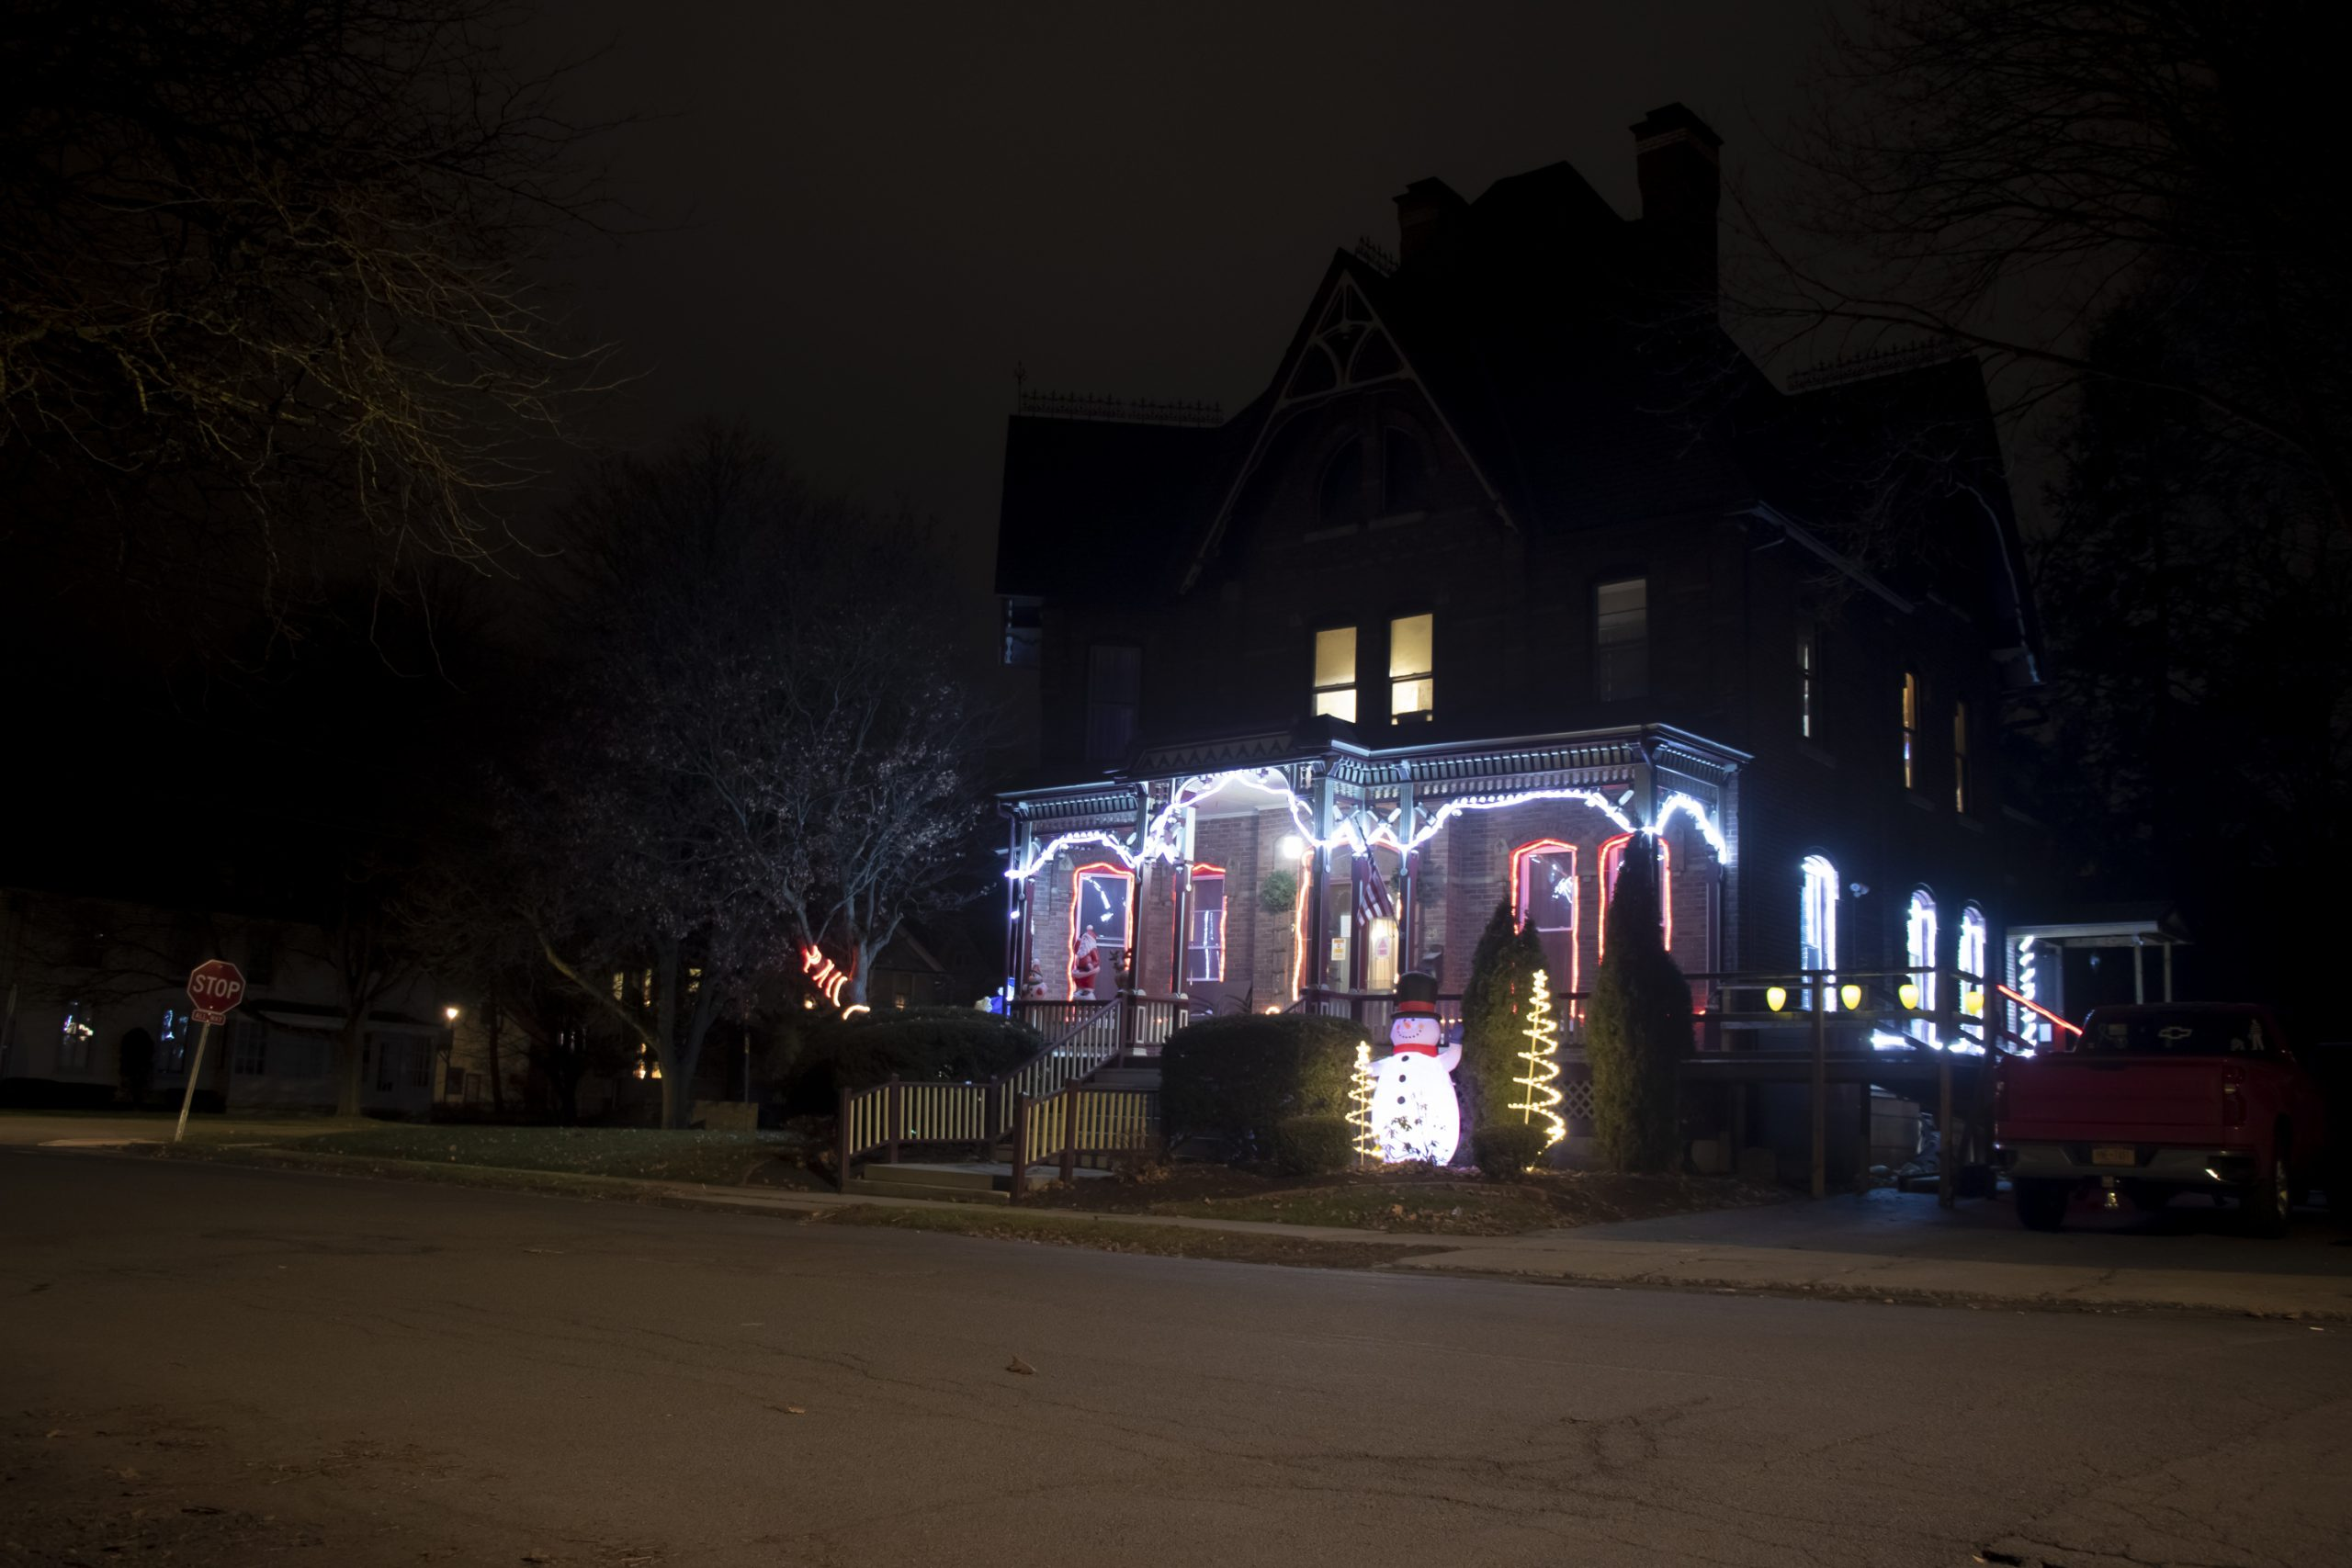 2020 HolidayDecorations OakElm 1 JPG lUI9Fa8K scaled - Ford Ave in the Decorative Spirit - Take a Look Tuesday